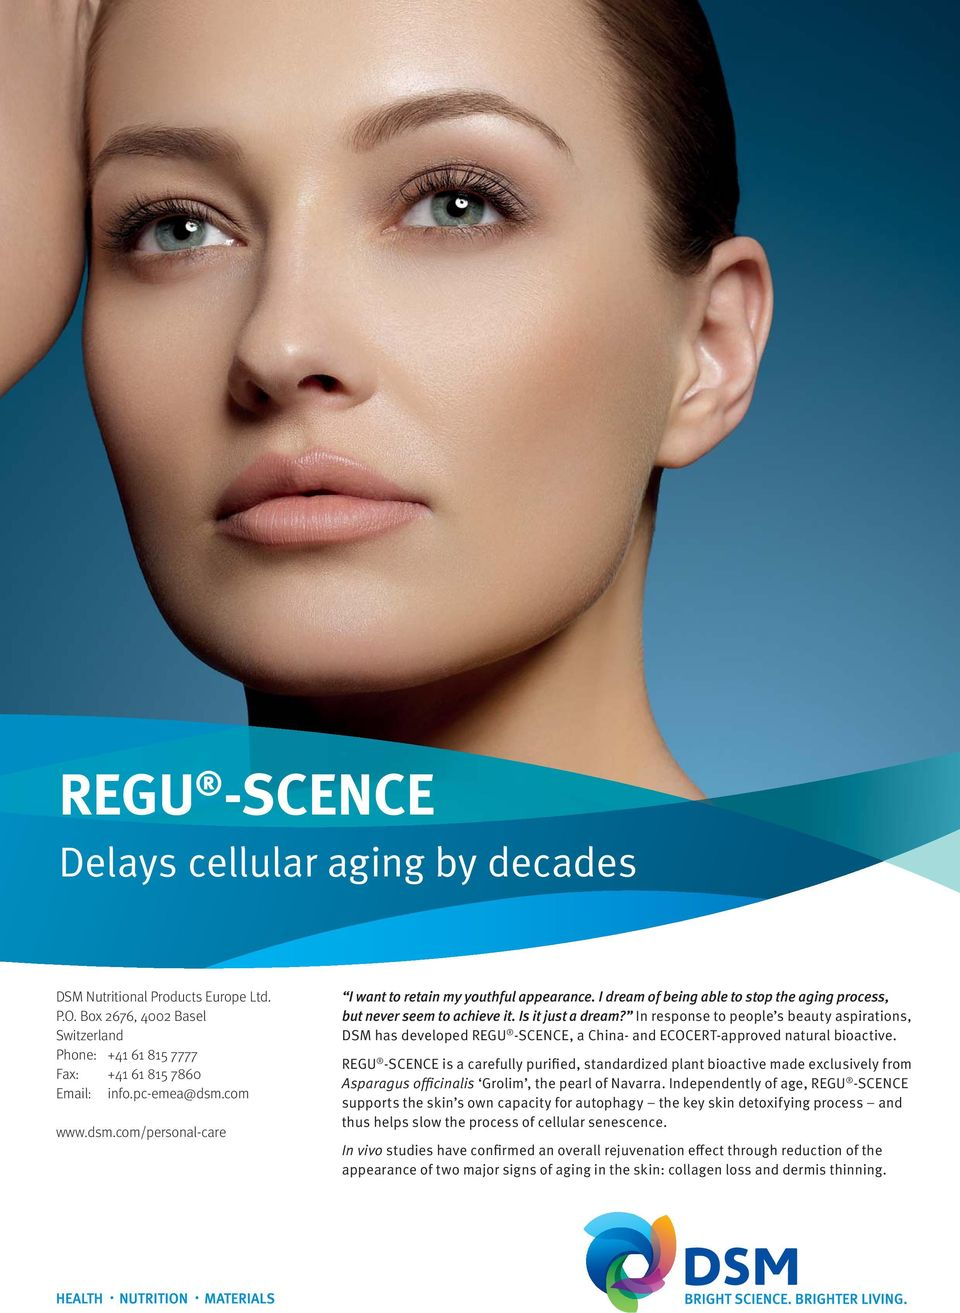 In response to people s beauty aspirations, DSM has developed REGU -SCENCE, a China- and ECOCERT-approved natural bioactive.